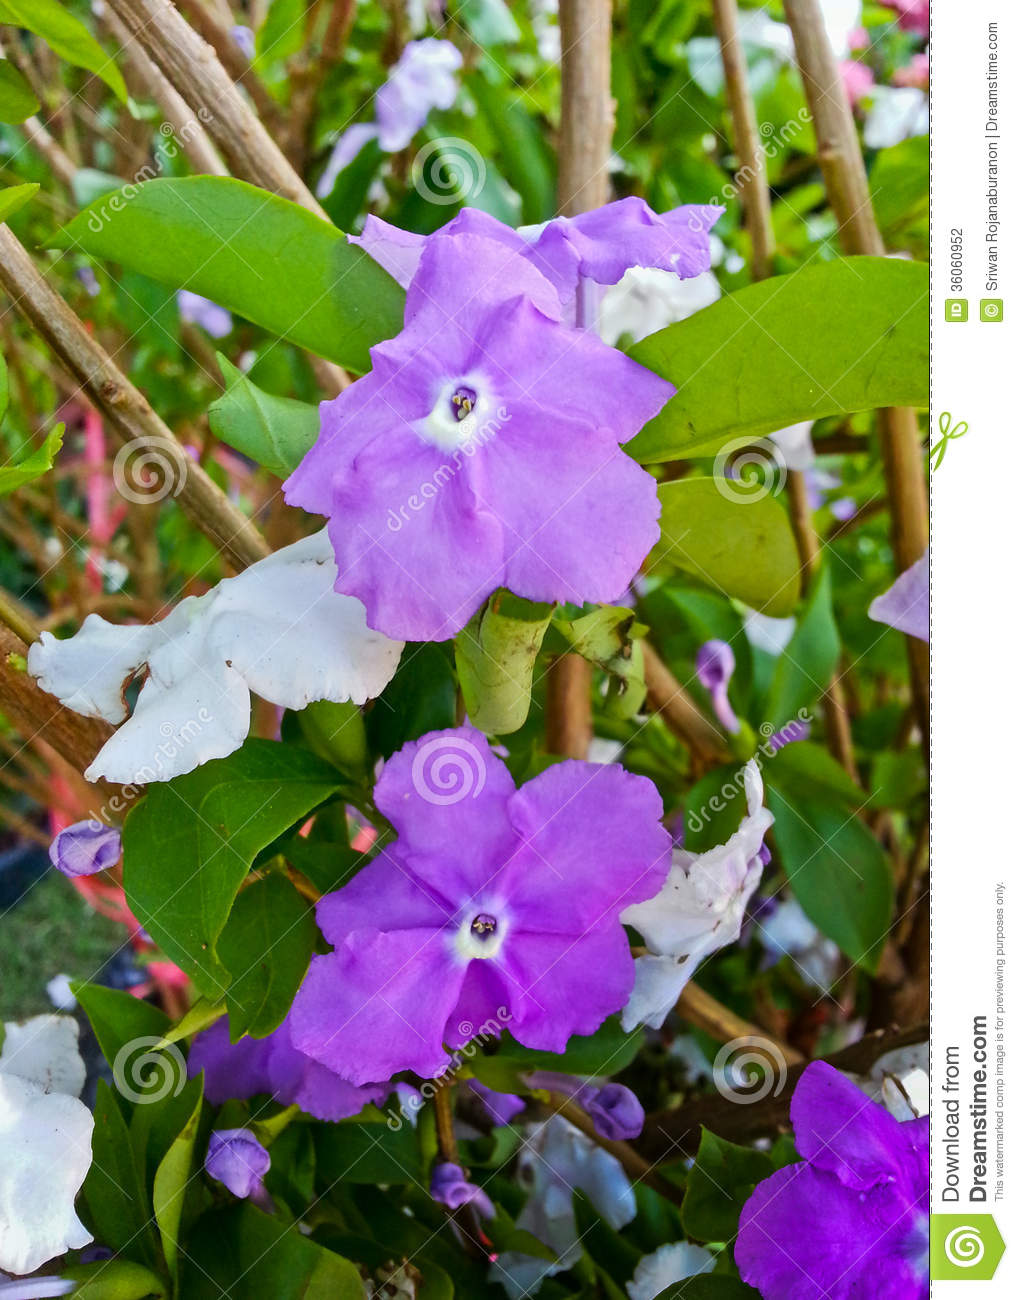 Yesterday Today And Tomorrow Flowers, Or Brunfelsia Uniflora Poh.